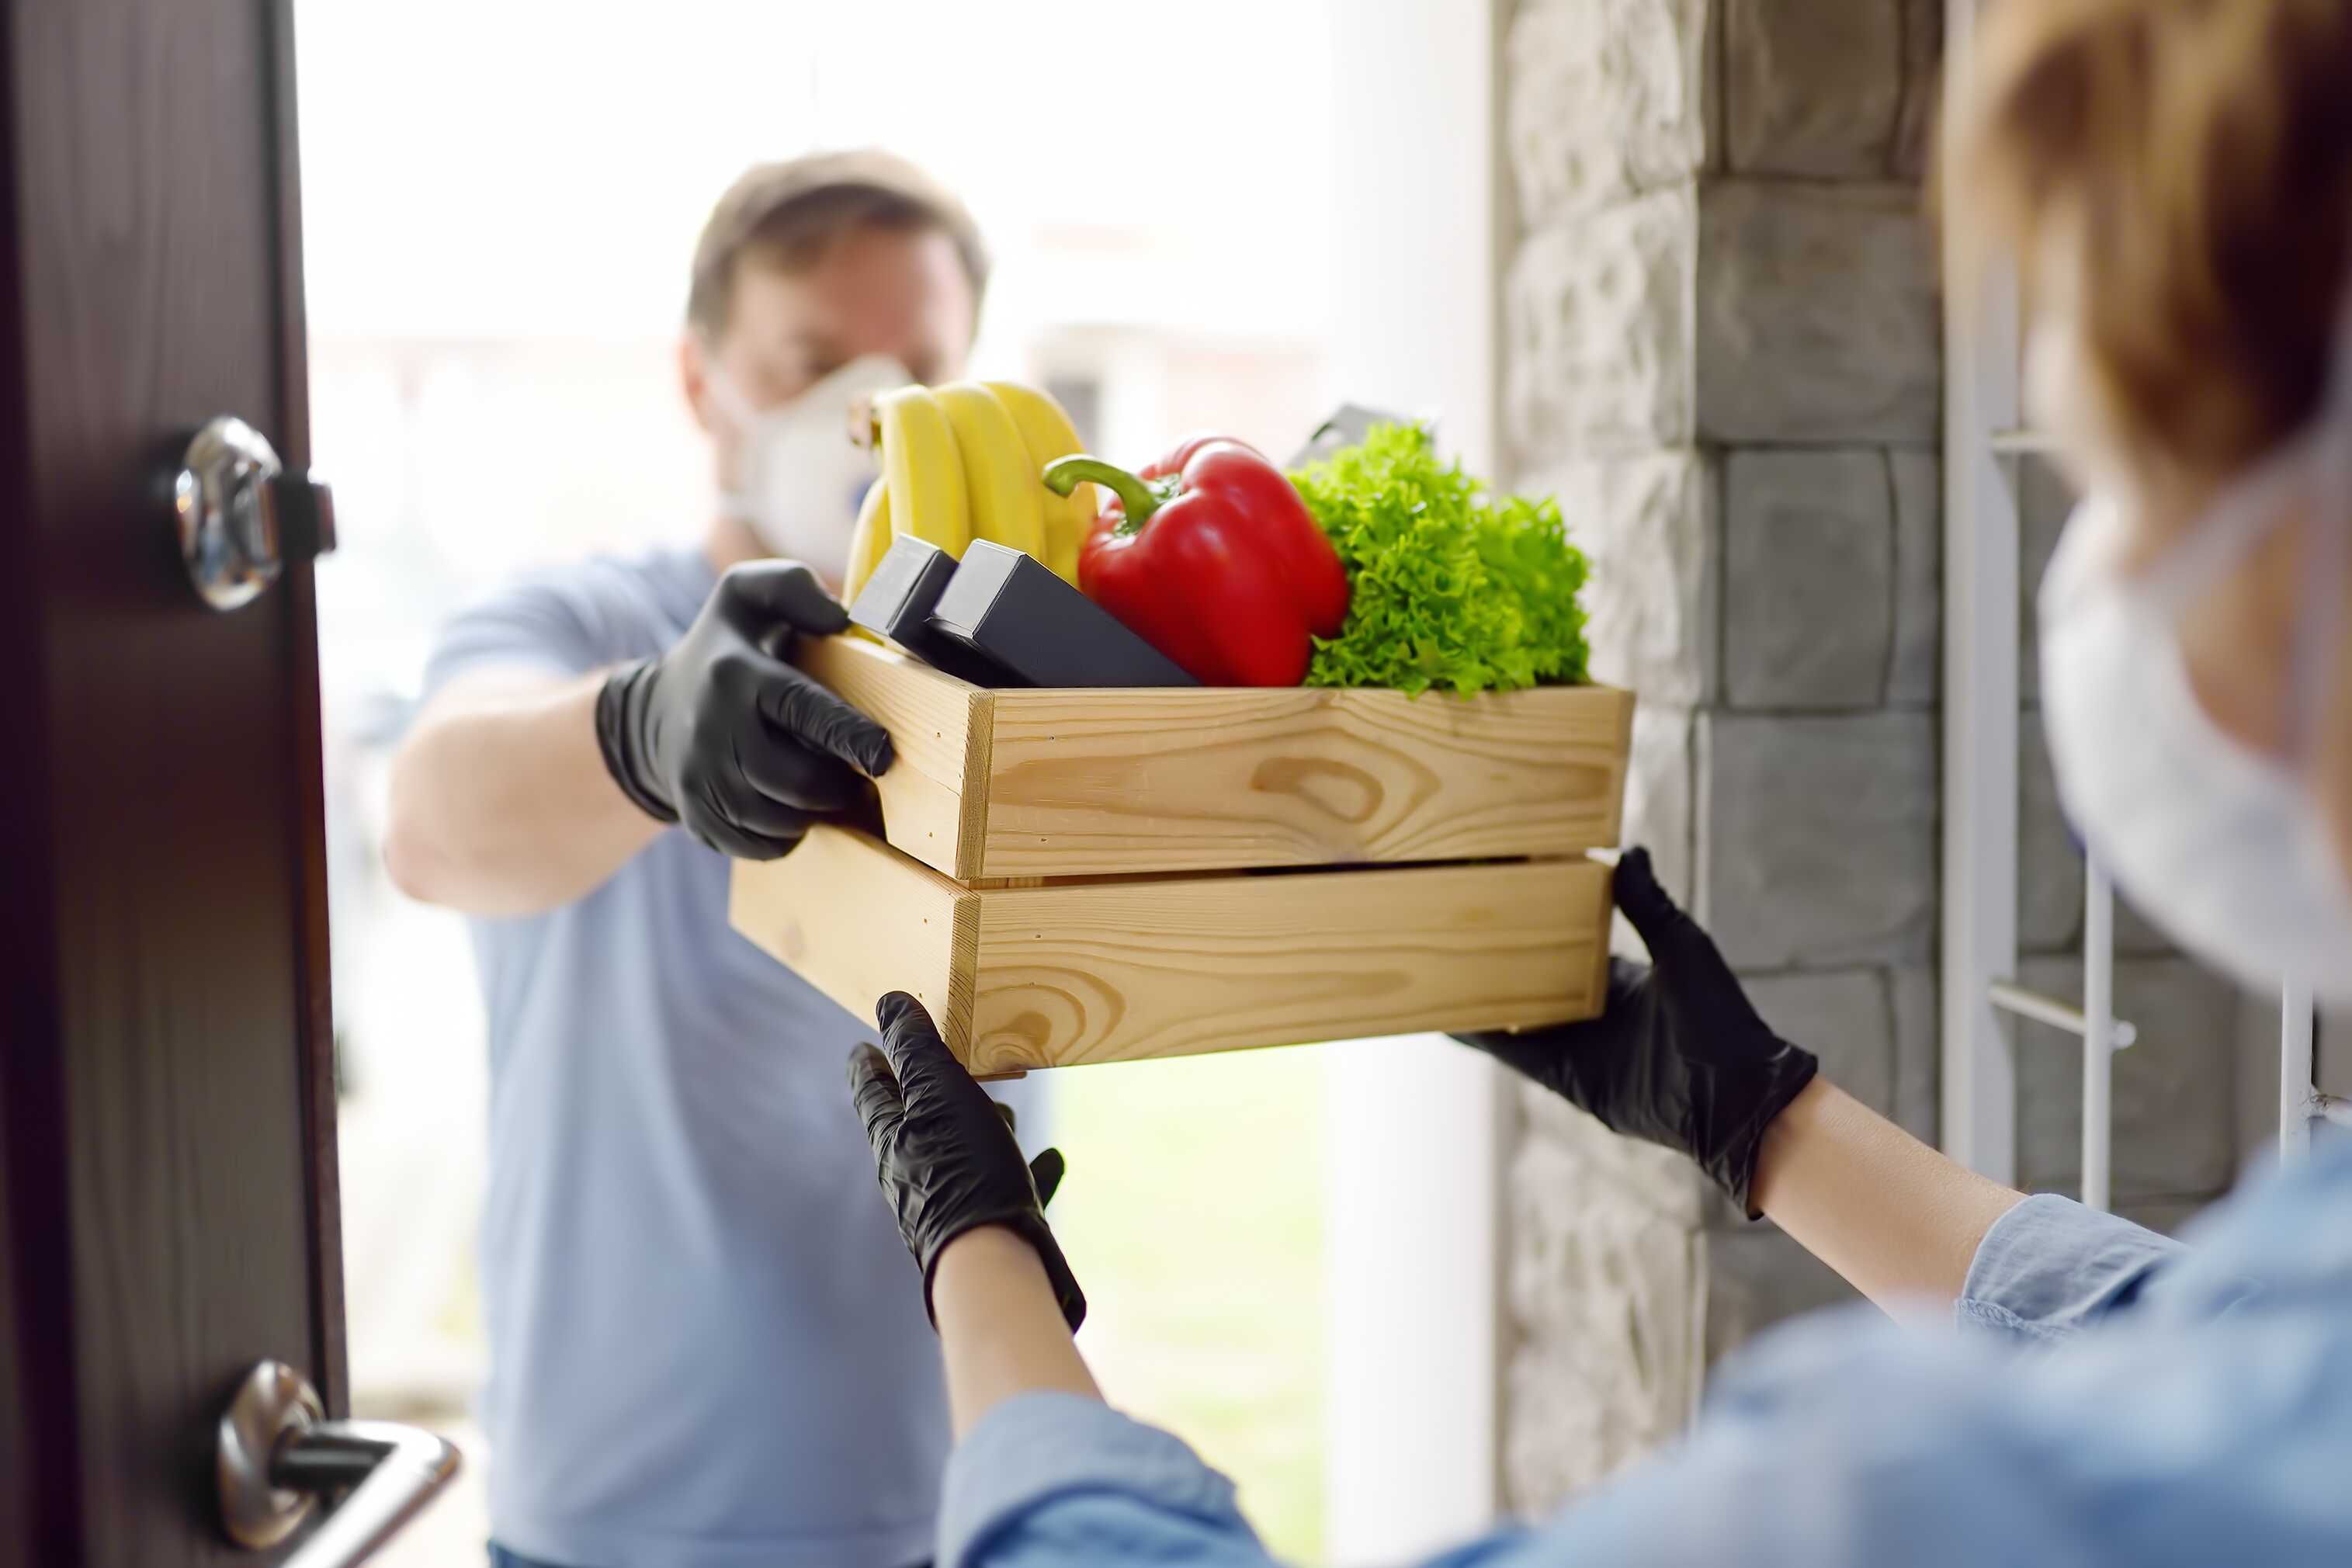 courier-volunteer-delivery-service-food-shopping-delivering-quarantine-customer-receiving-order_t20_xvlzng_optimized